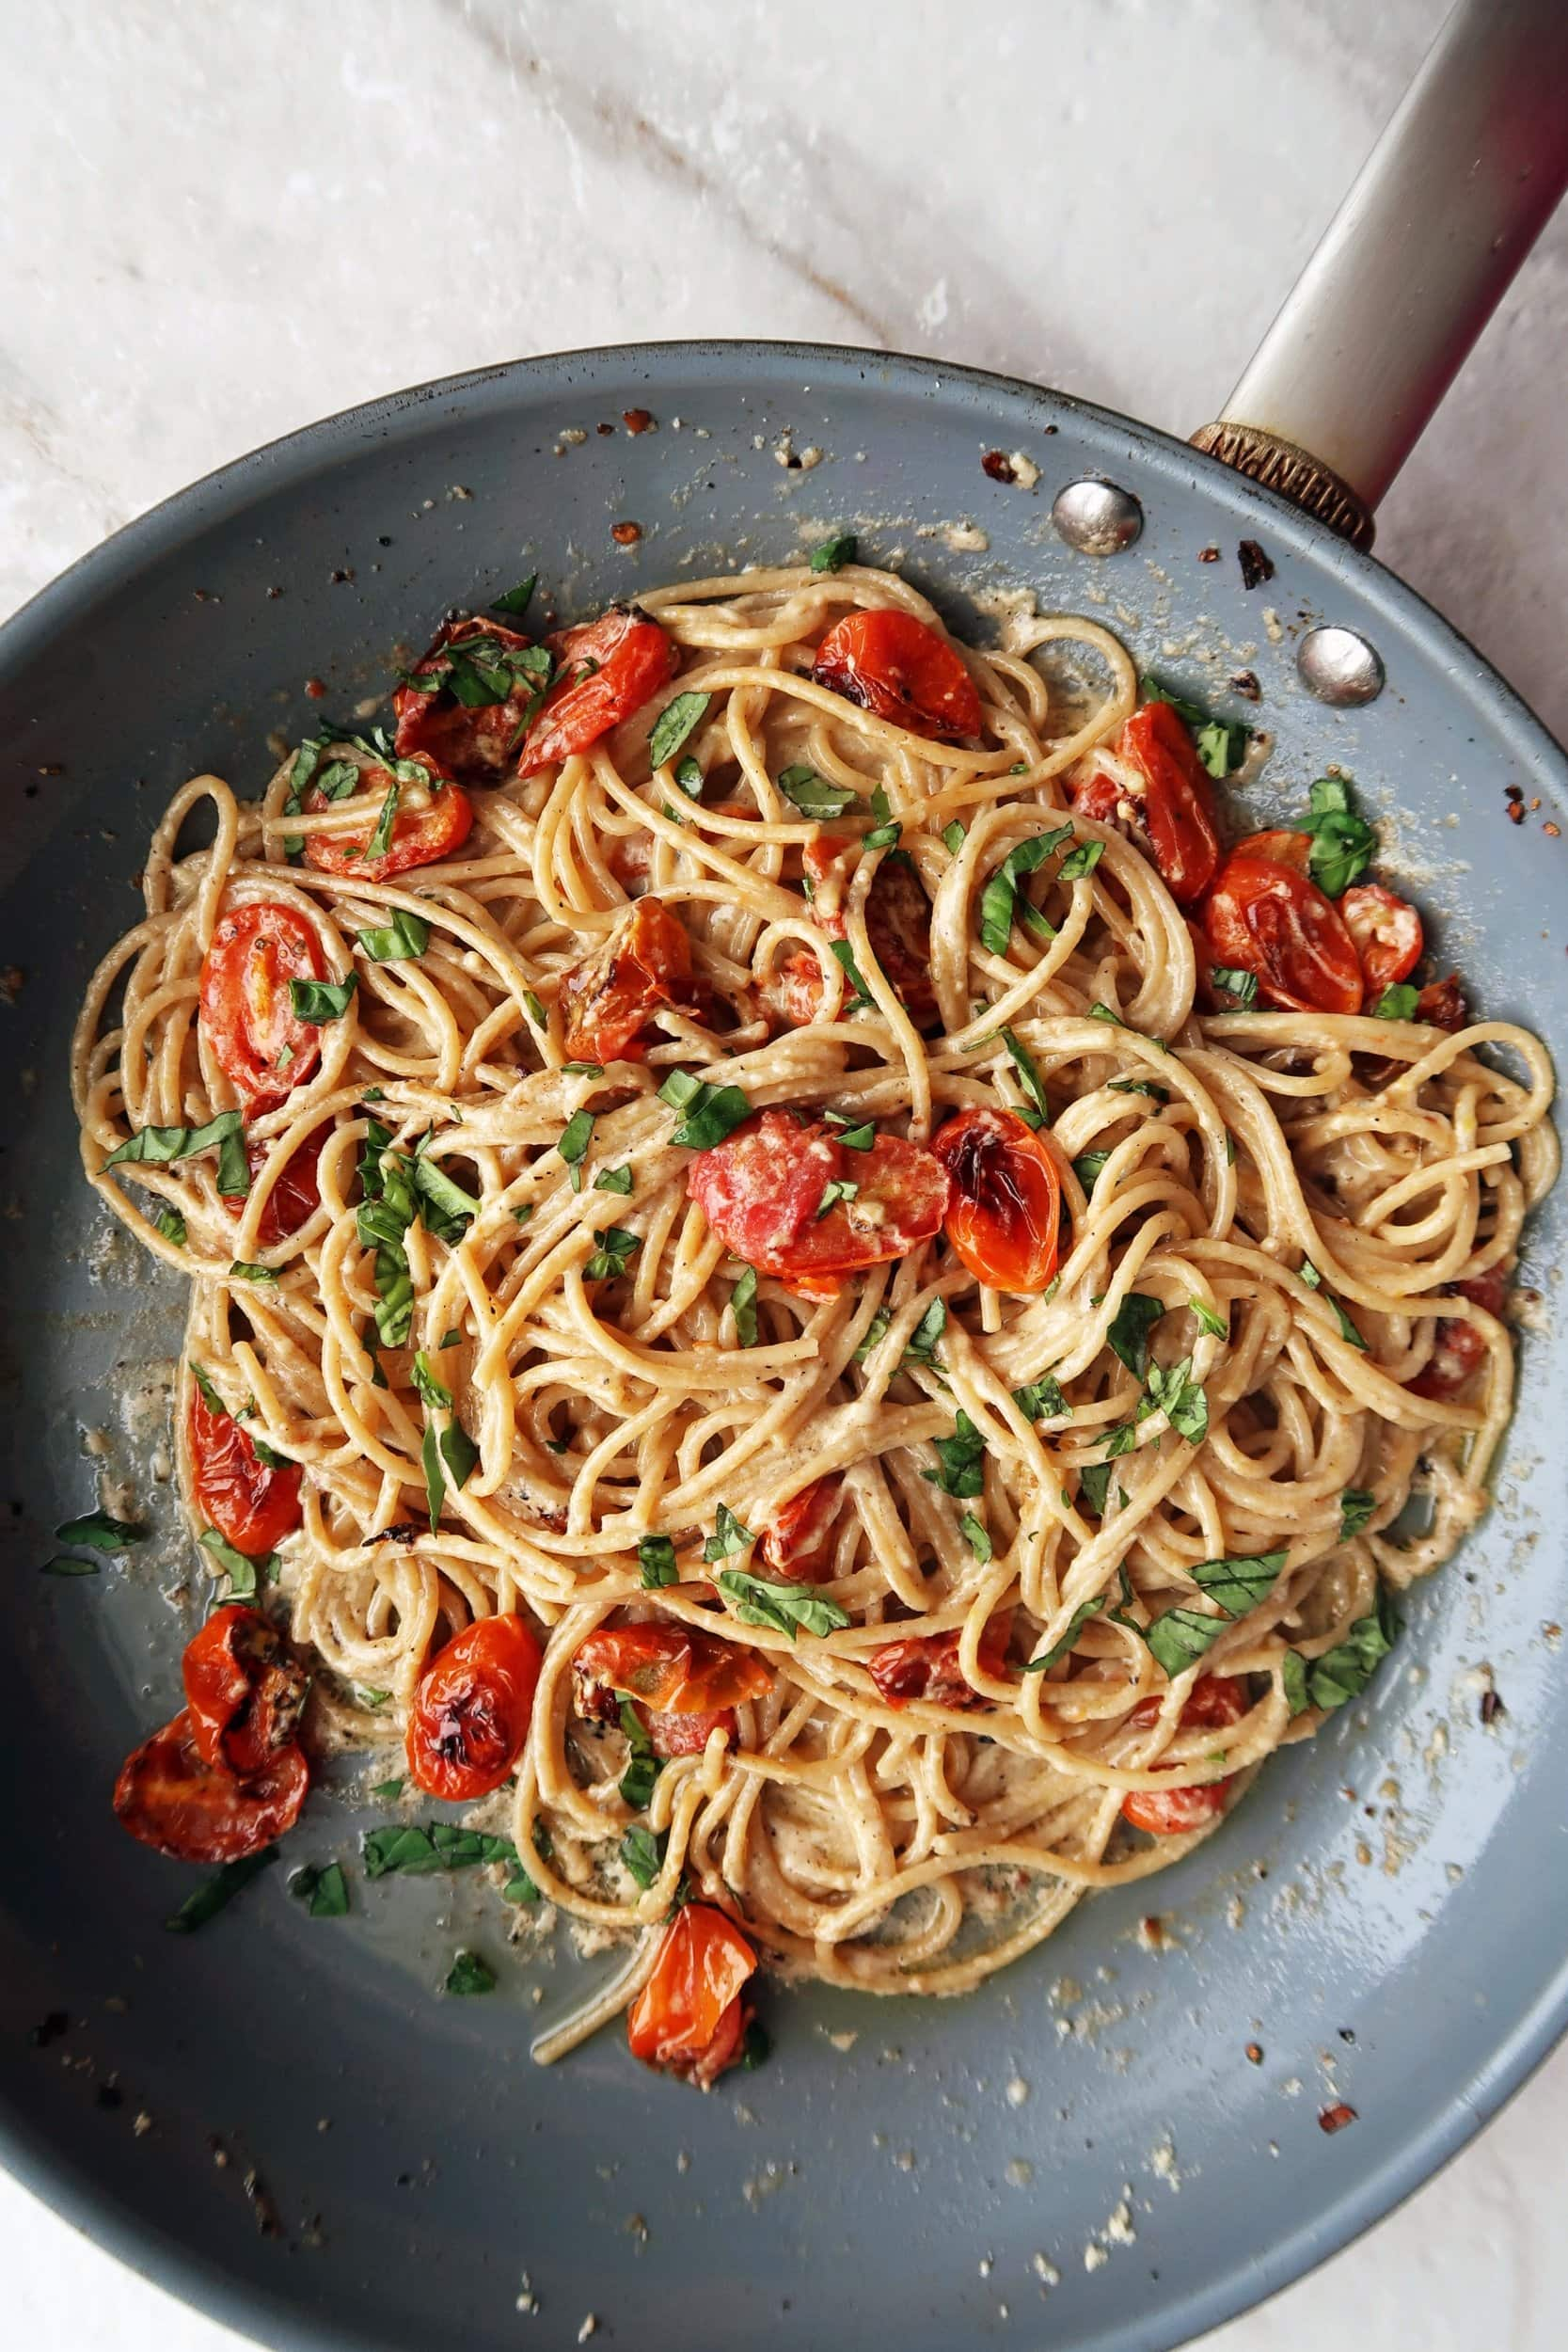 Black pepper and parmesan spaghetti (cheese and pepper pasta) with garlic roasted tomatoes tossed in a skillet.